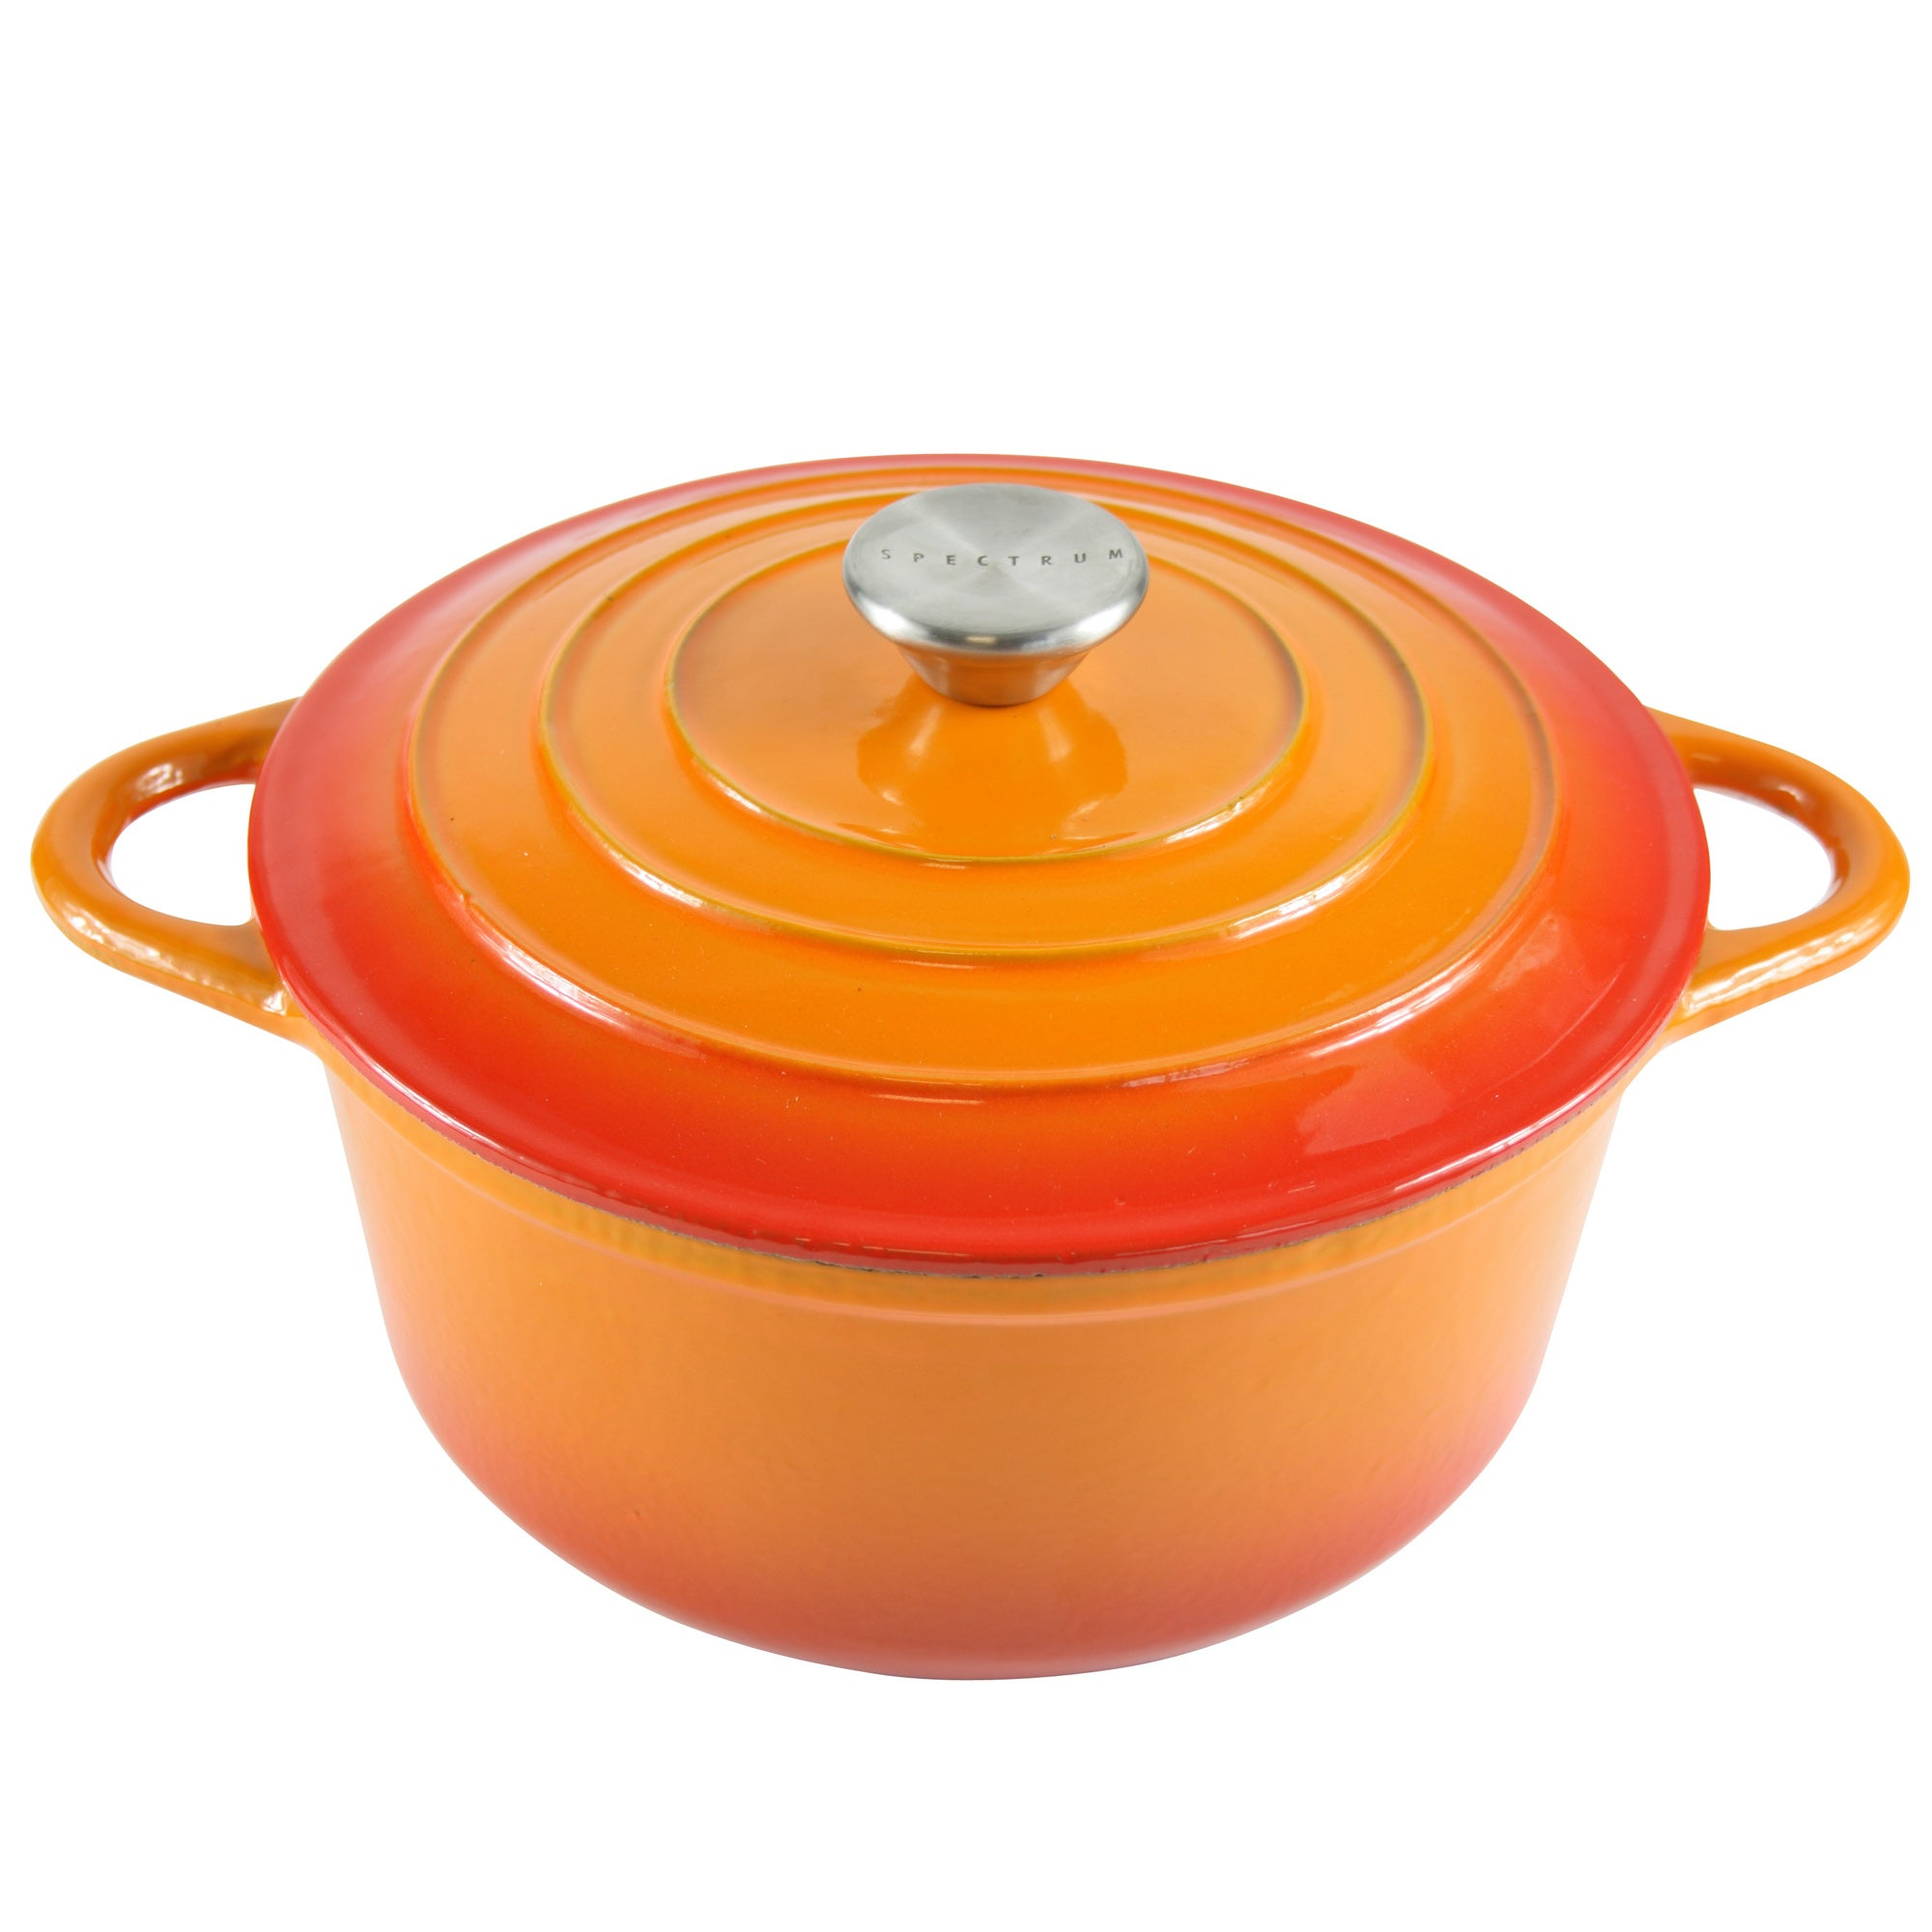 Orange Spectrum Collection Cast Iron Casserole Dish